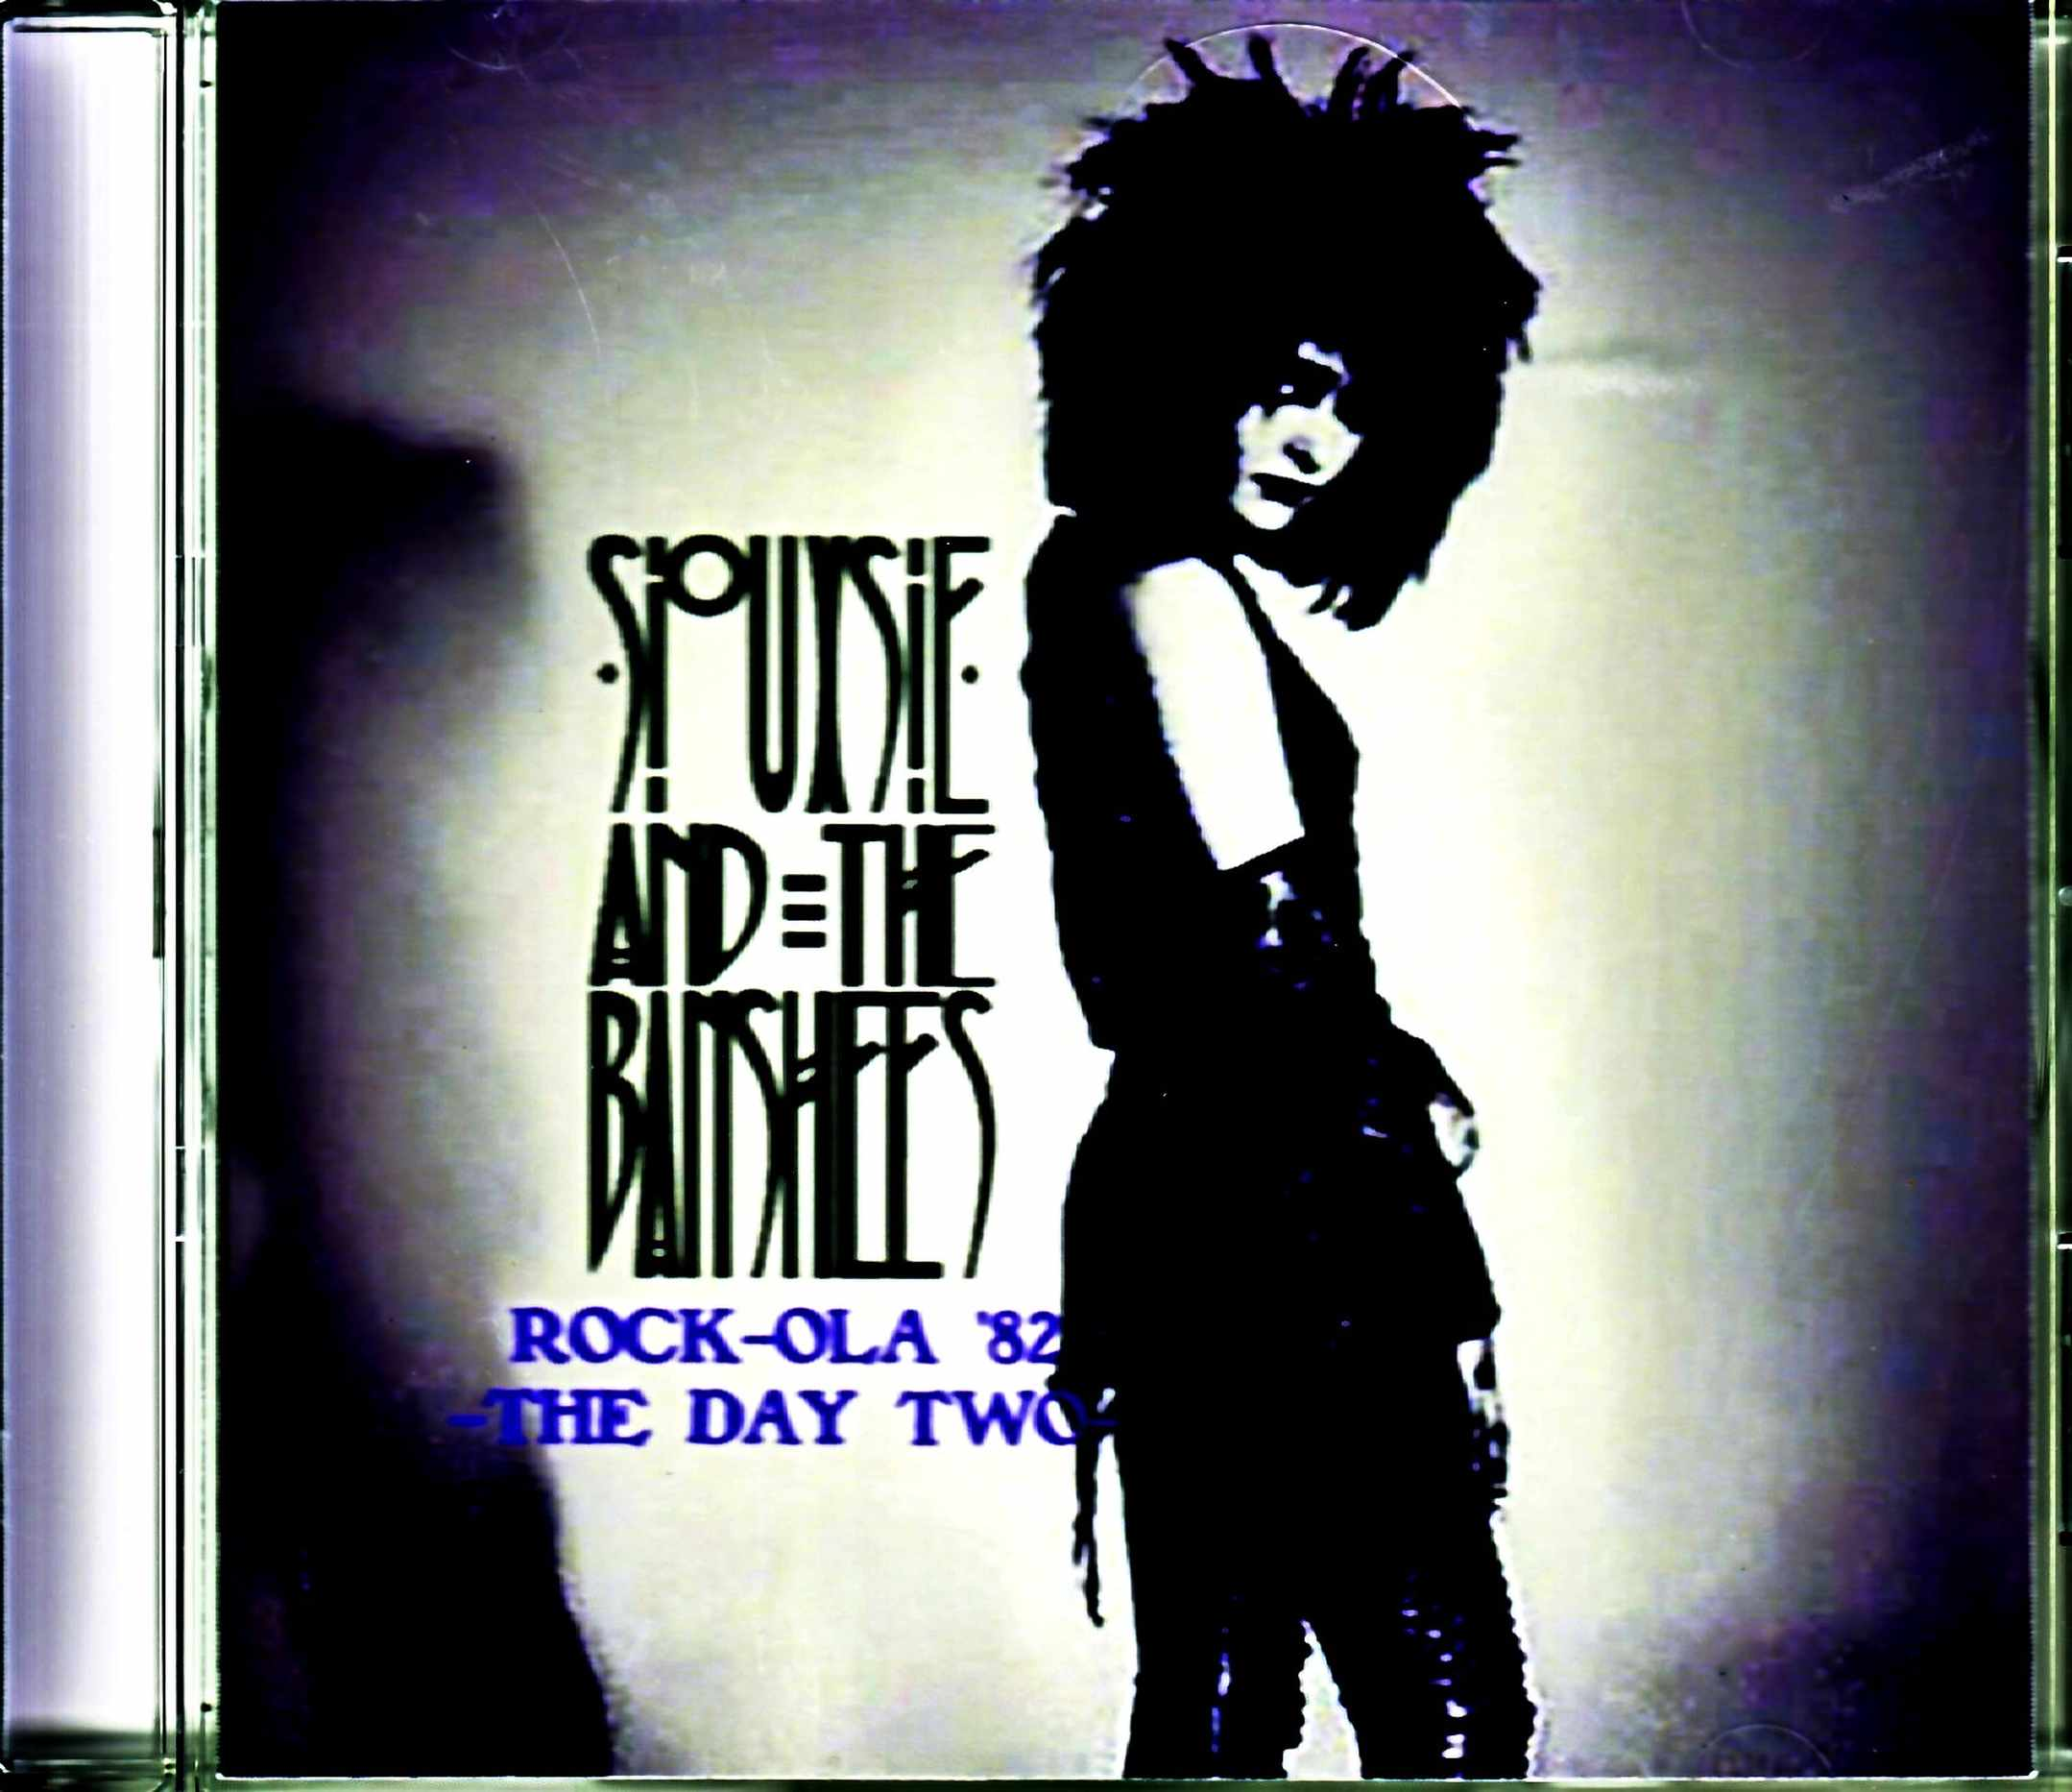 Siouxsie and the Banshees スージー・アンド・ザ・バンシーズ/Spain 10.30.1982 Complete